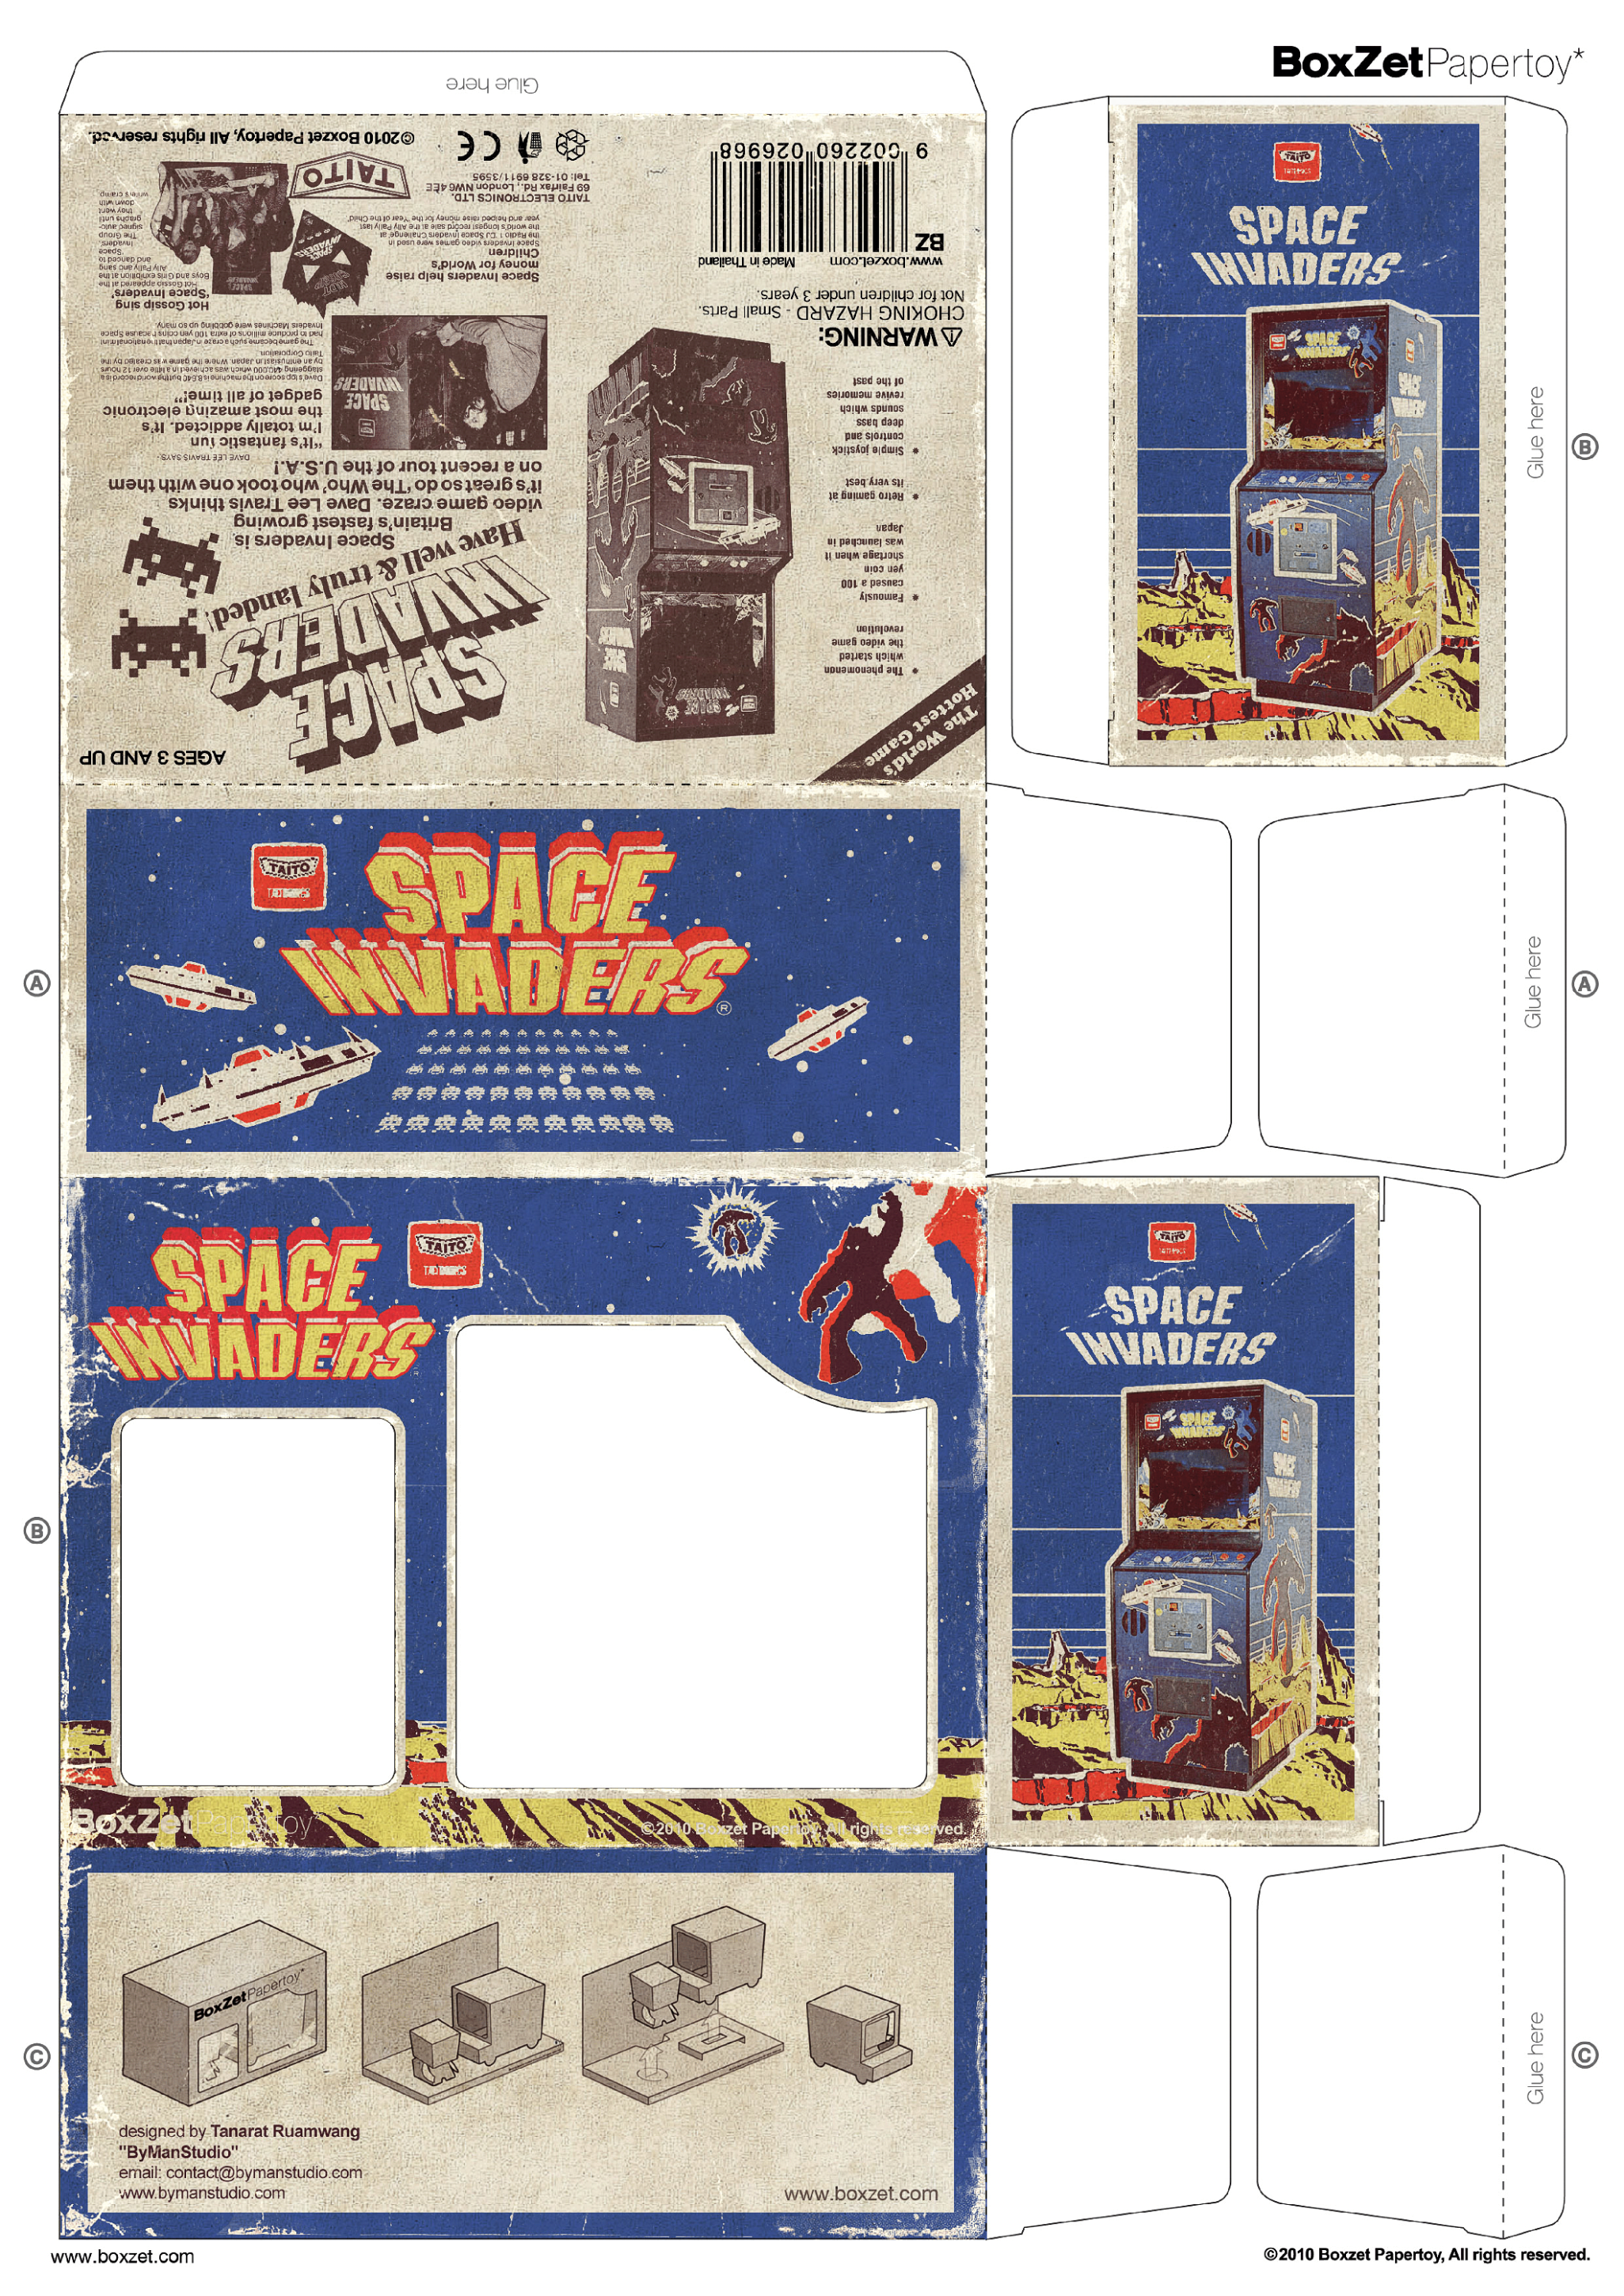 Papertoy Space Invaders Boxzet 1 Paper Toys Paper Dolls Paper Crafts